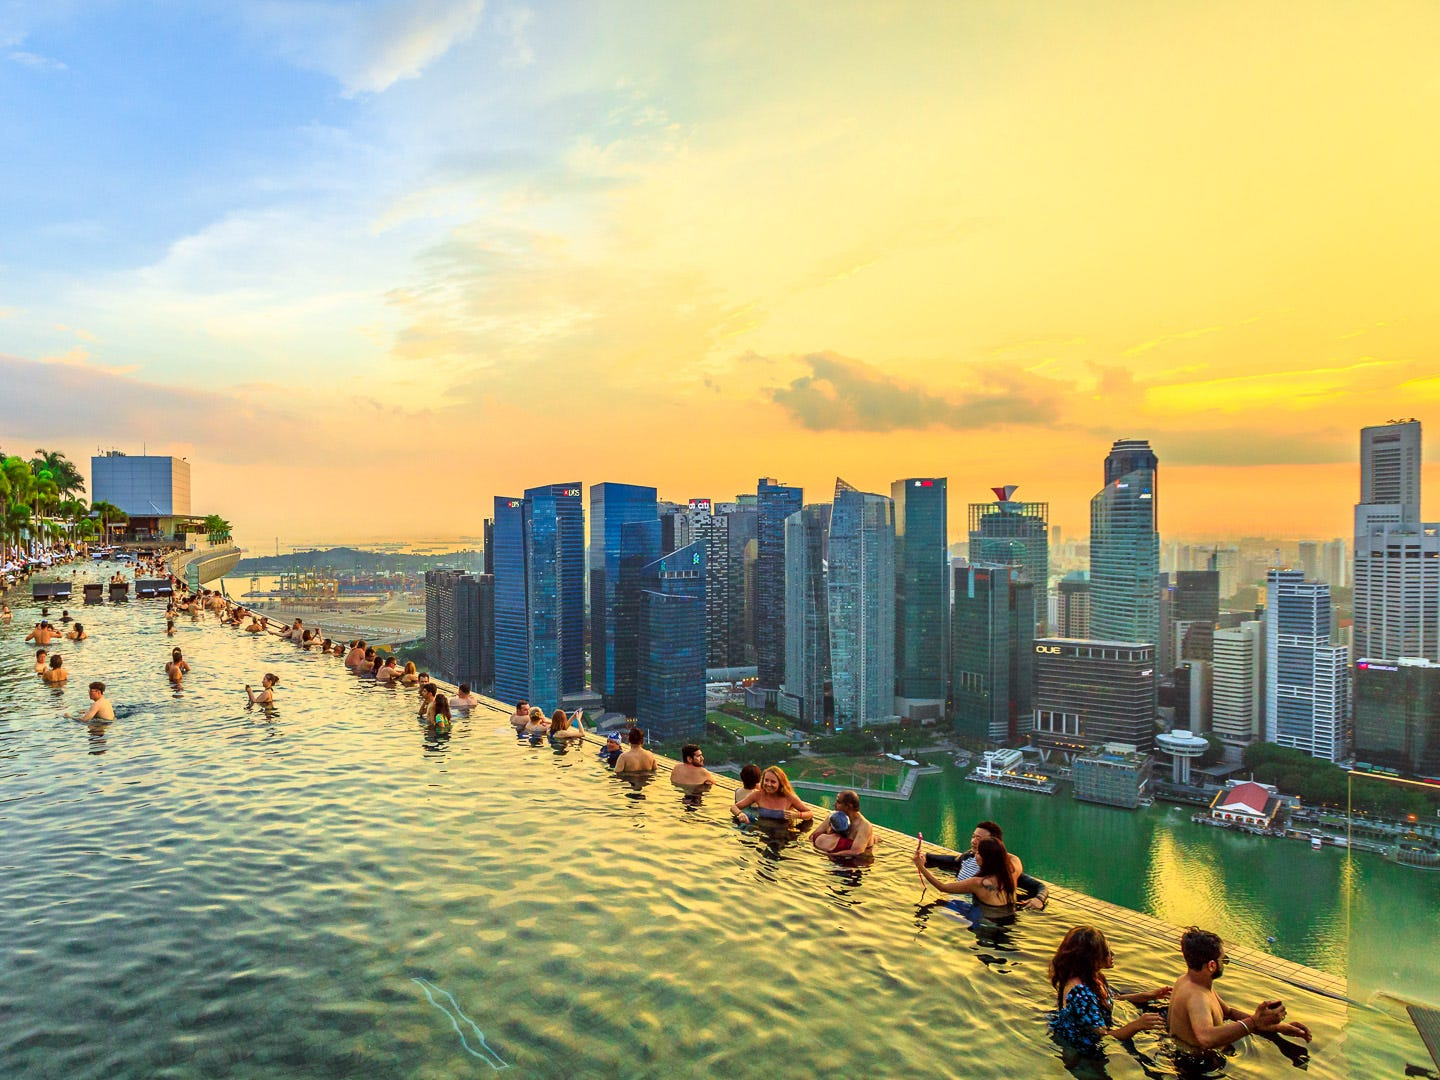 """16. Singapore. Total cost per day: $87.47. Although you'll spend an average of $47.67 per night on hotels in Singapore — the third-most expensive lodging cost on this list — it's still considered one of the cheapest countries to visit. You don't need the budget of 2018's """"Crazy Rich Asians"""" to enjoy a fun tropical vacation in Singapore. However, keep in mind that round-trip flights from JFK cost $879, which is the fourth-most expensive airfare in this ranking."""